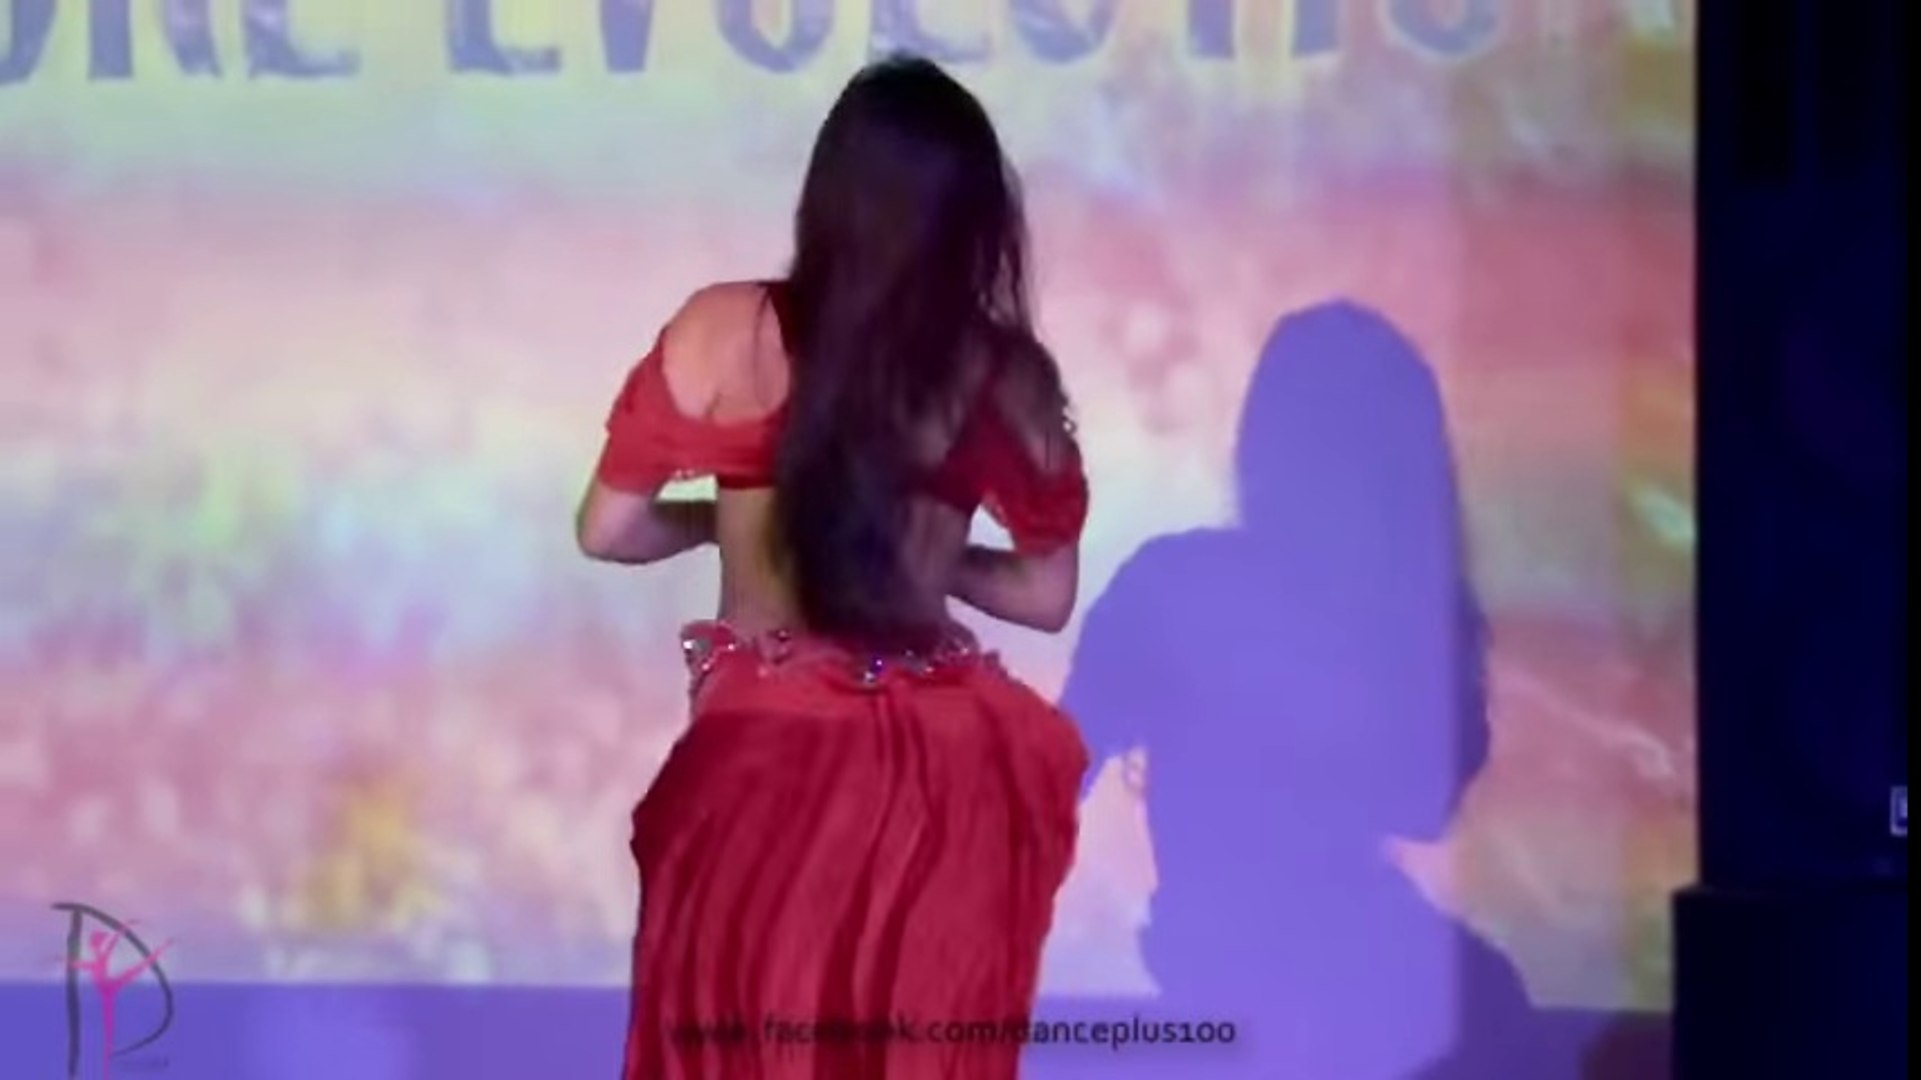 Mujra and hot hot belly dance 2016 -Best belly dance performed by alla kushnir 2016 - latest belly d